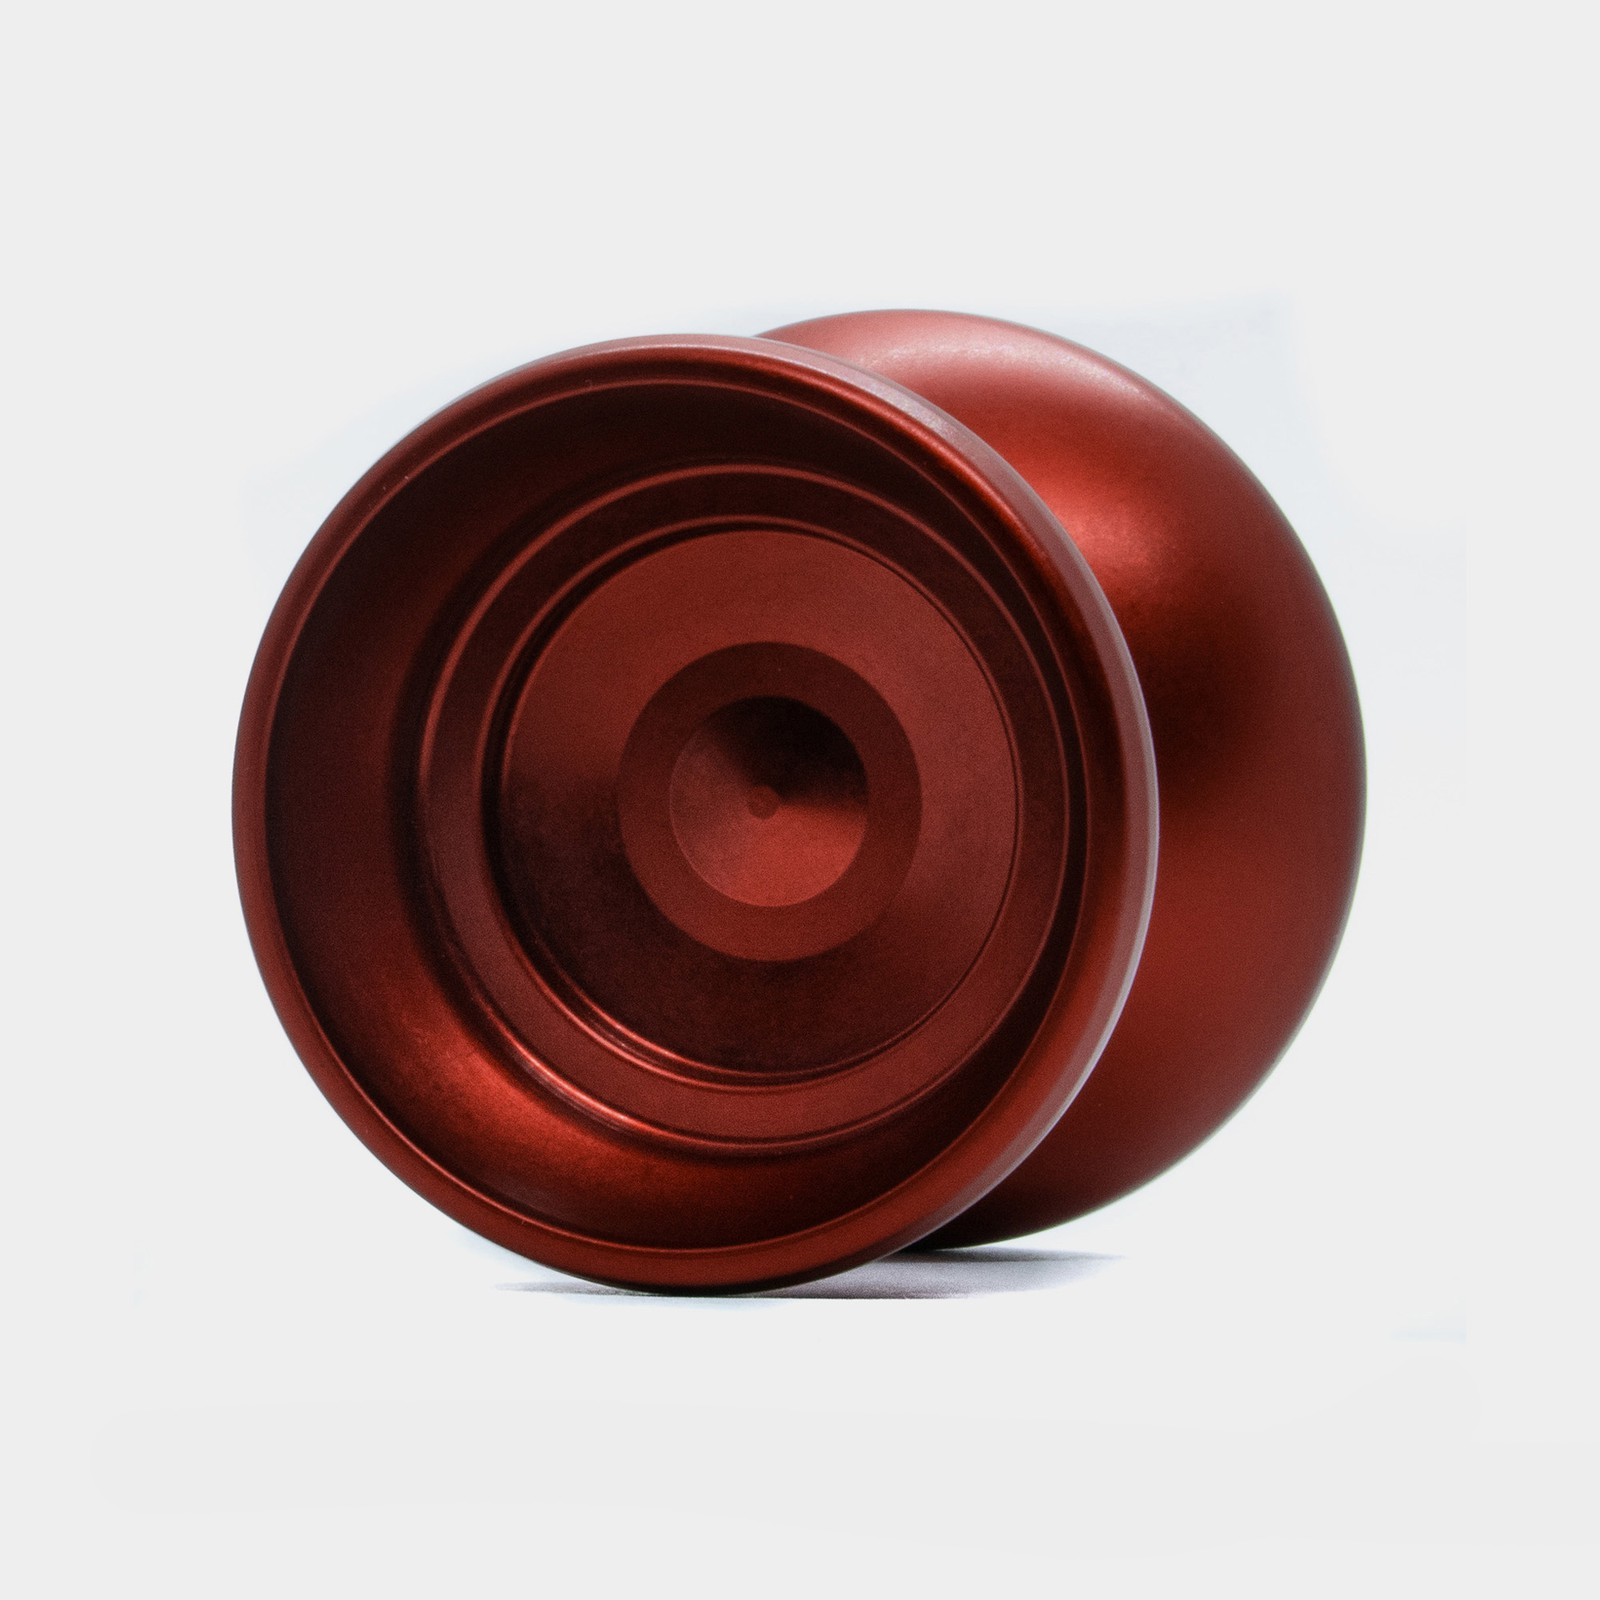 Gauntlet yo-yo in Red by One Drop YoYos